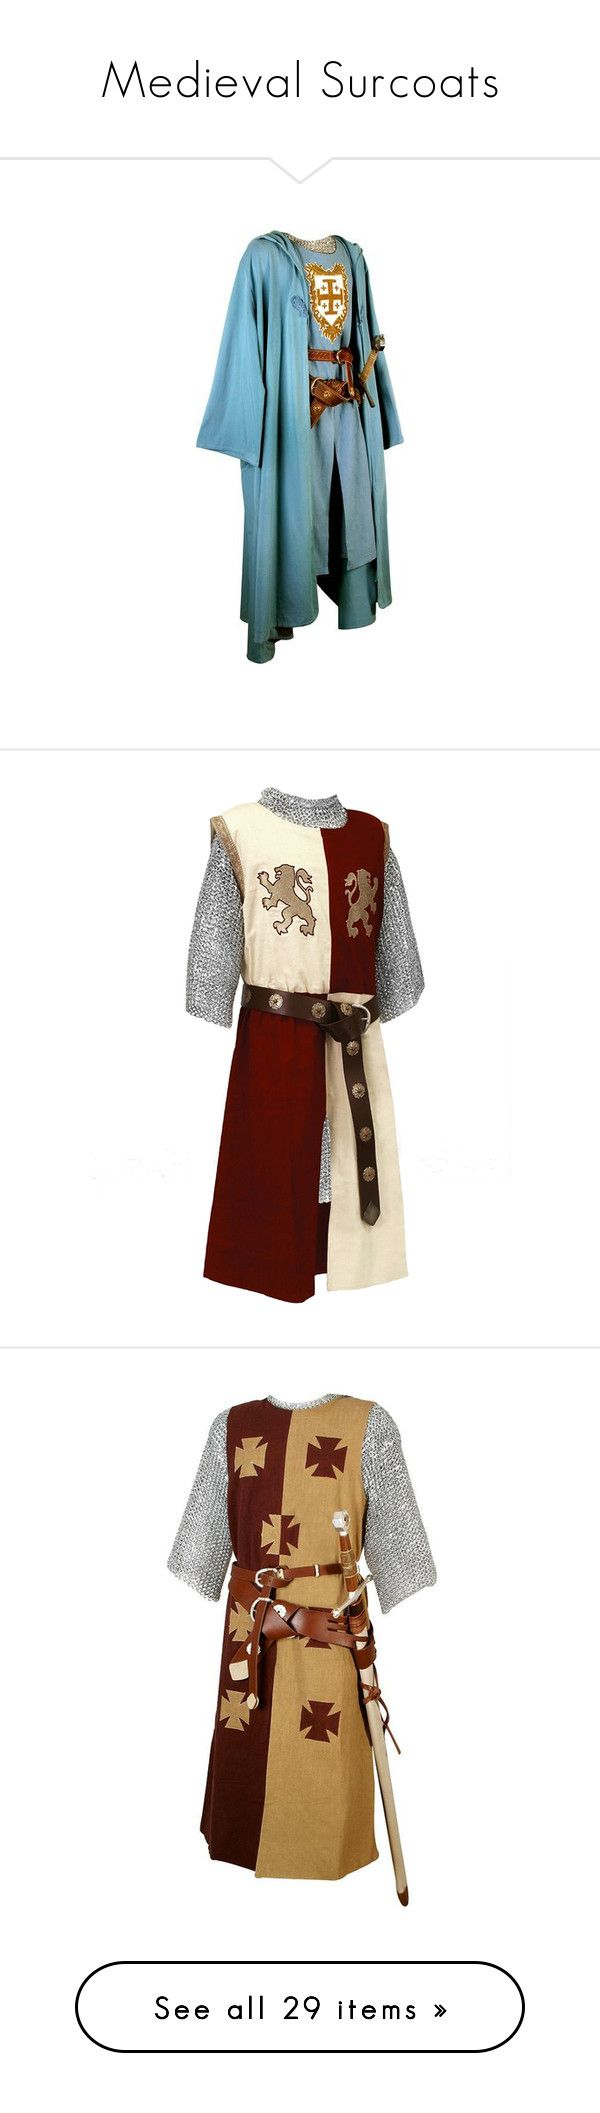 """""""Medieval Surcoats"""" by savagedamsel ❤ liked on Polyvore featuring costumes, medieval, arthur, medieval outfit, men, blue halloween costume, blue costume, hector, armor e period"""